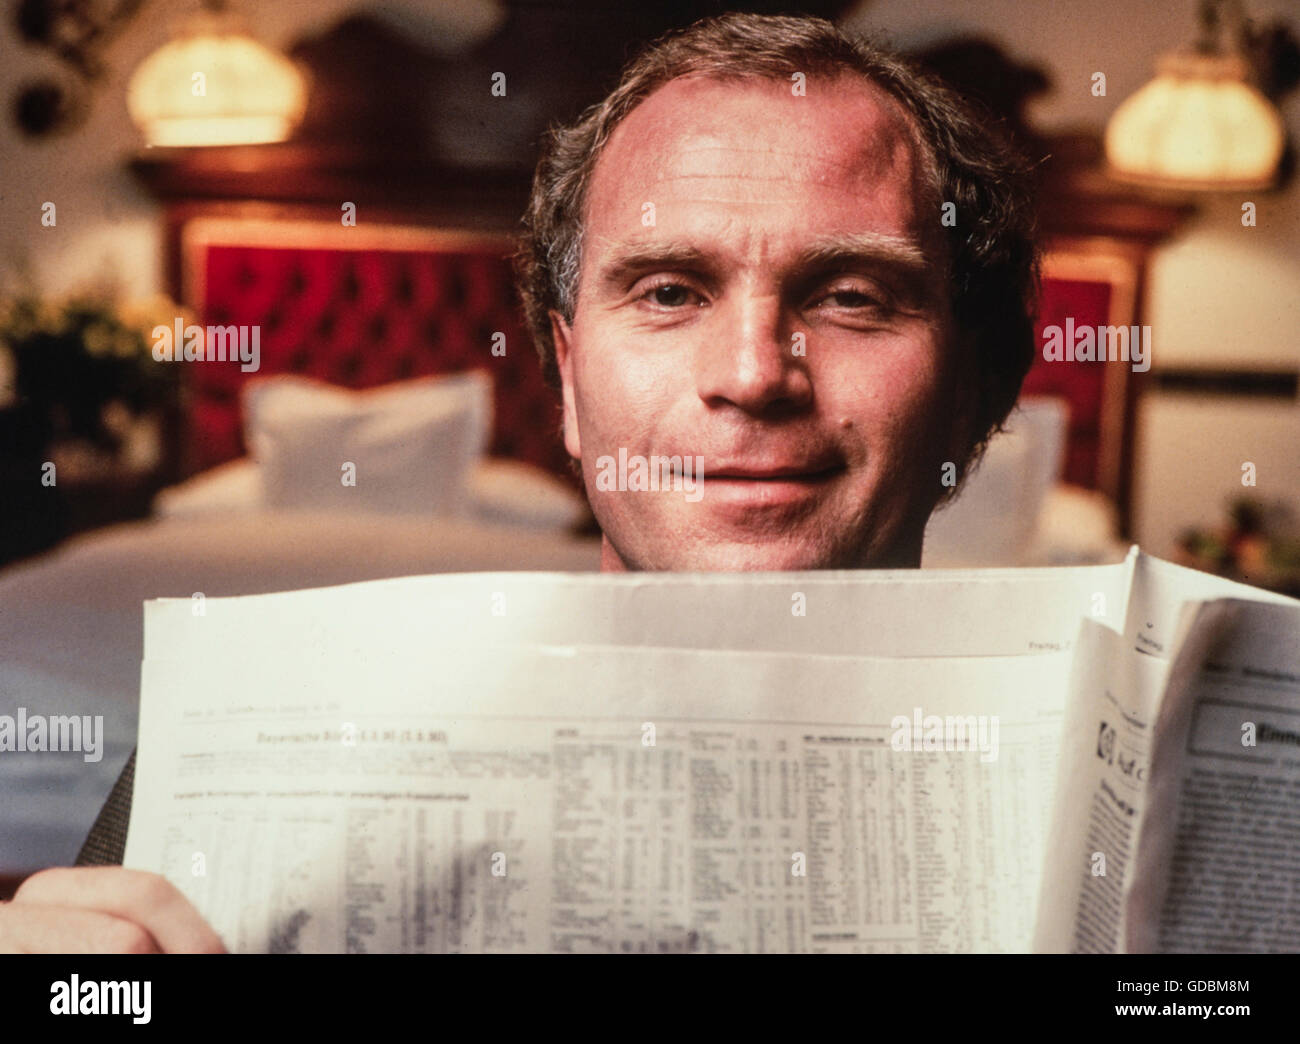 Hoeness, Ulrich 'Uli', * 5.1.1952, German athlete, football functionary and businessman, manager of the - Stock Image